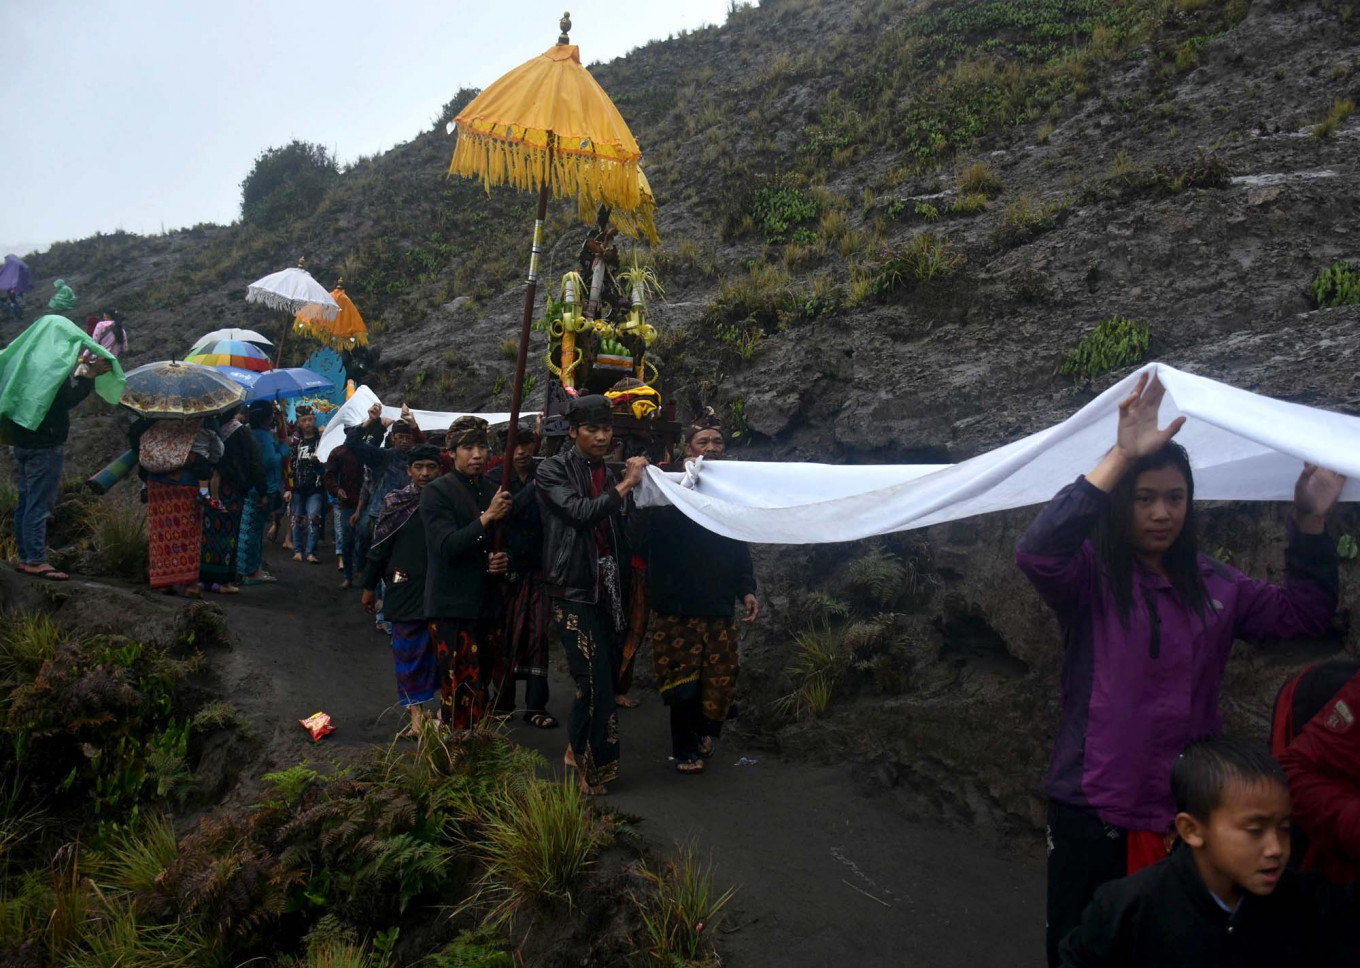 Villagers parade heirlooms and offerings on the way to the Widodaren spring while others hold sheets to catch the rain. JP/Aman Rochman